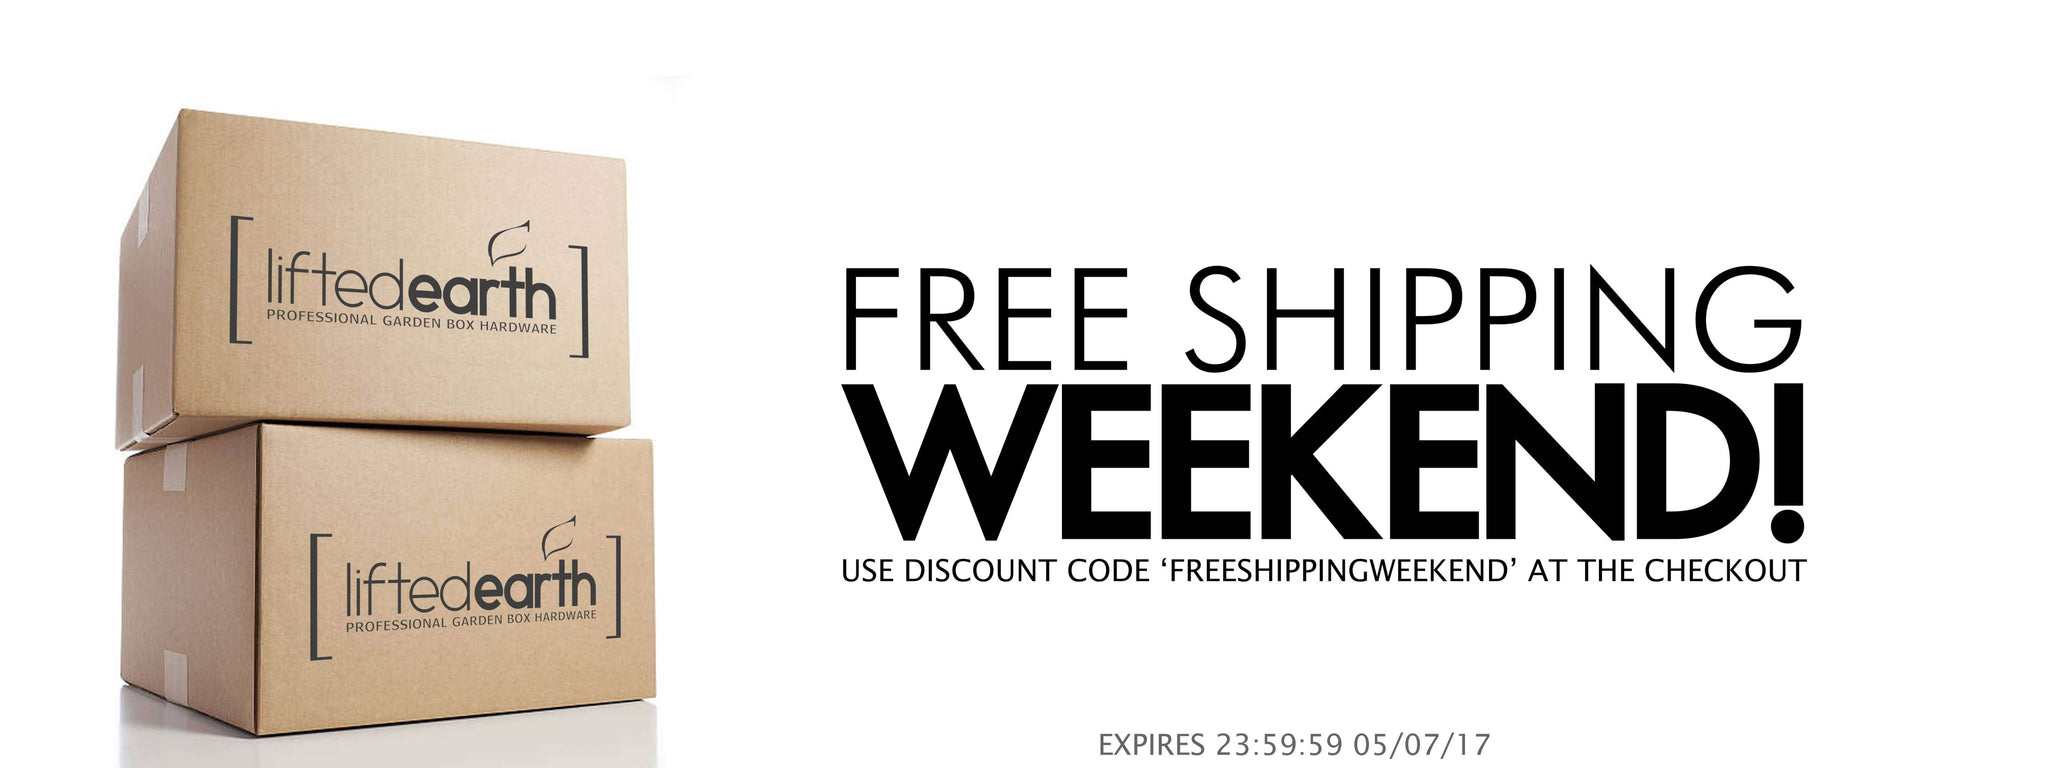 IT'S A FREE SHIPPING WEEKEND!